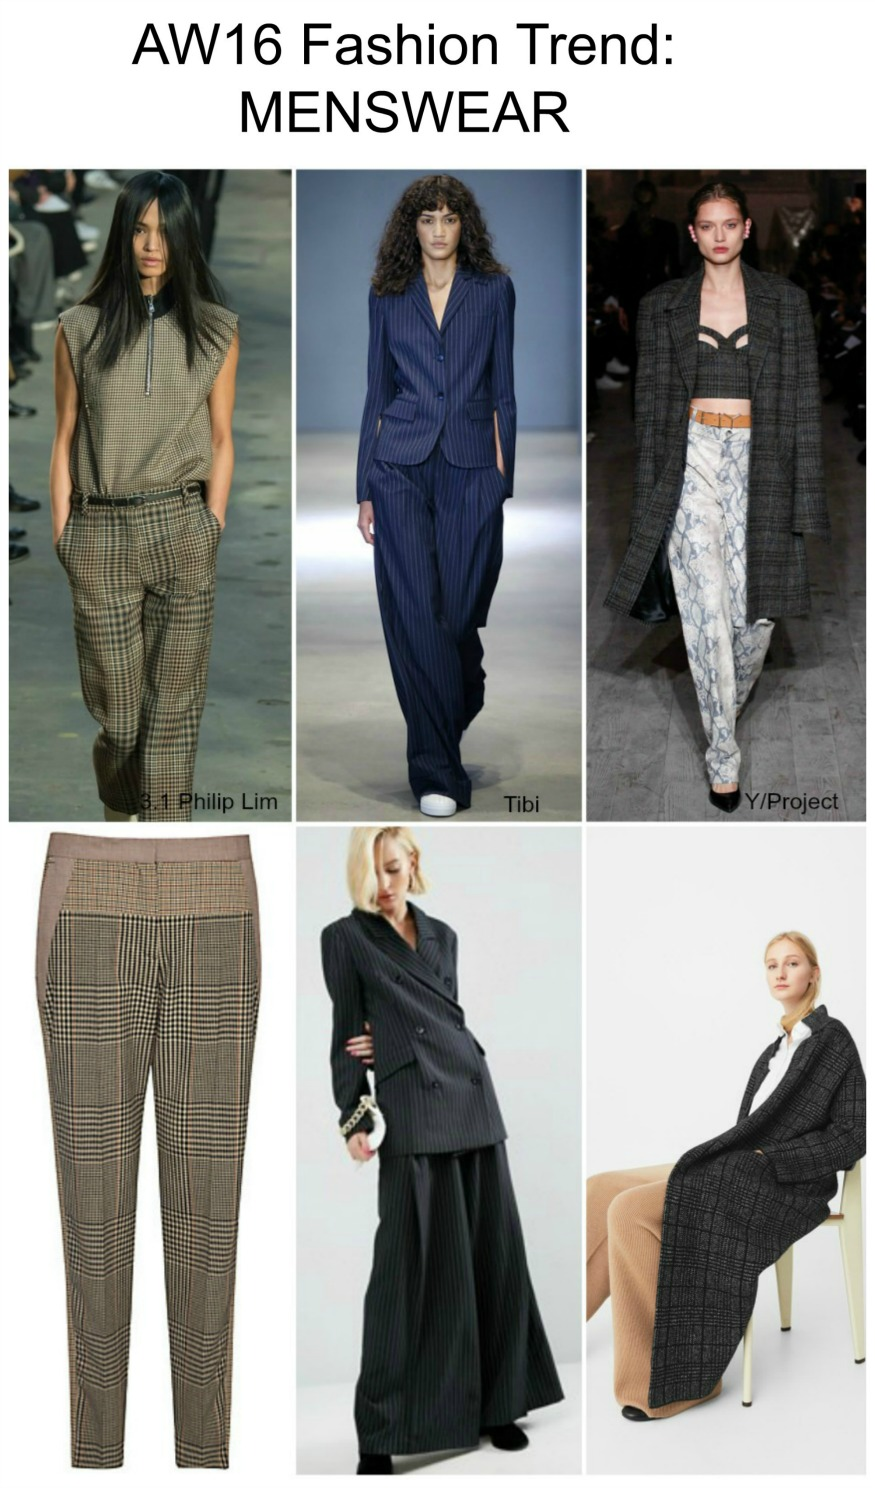 5 Fall Fashion Trends Menswear for women